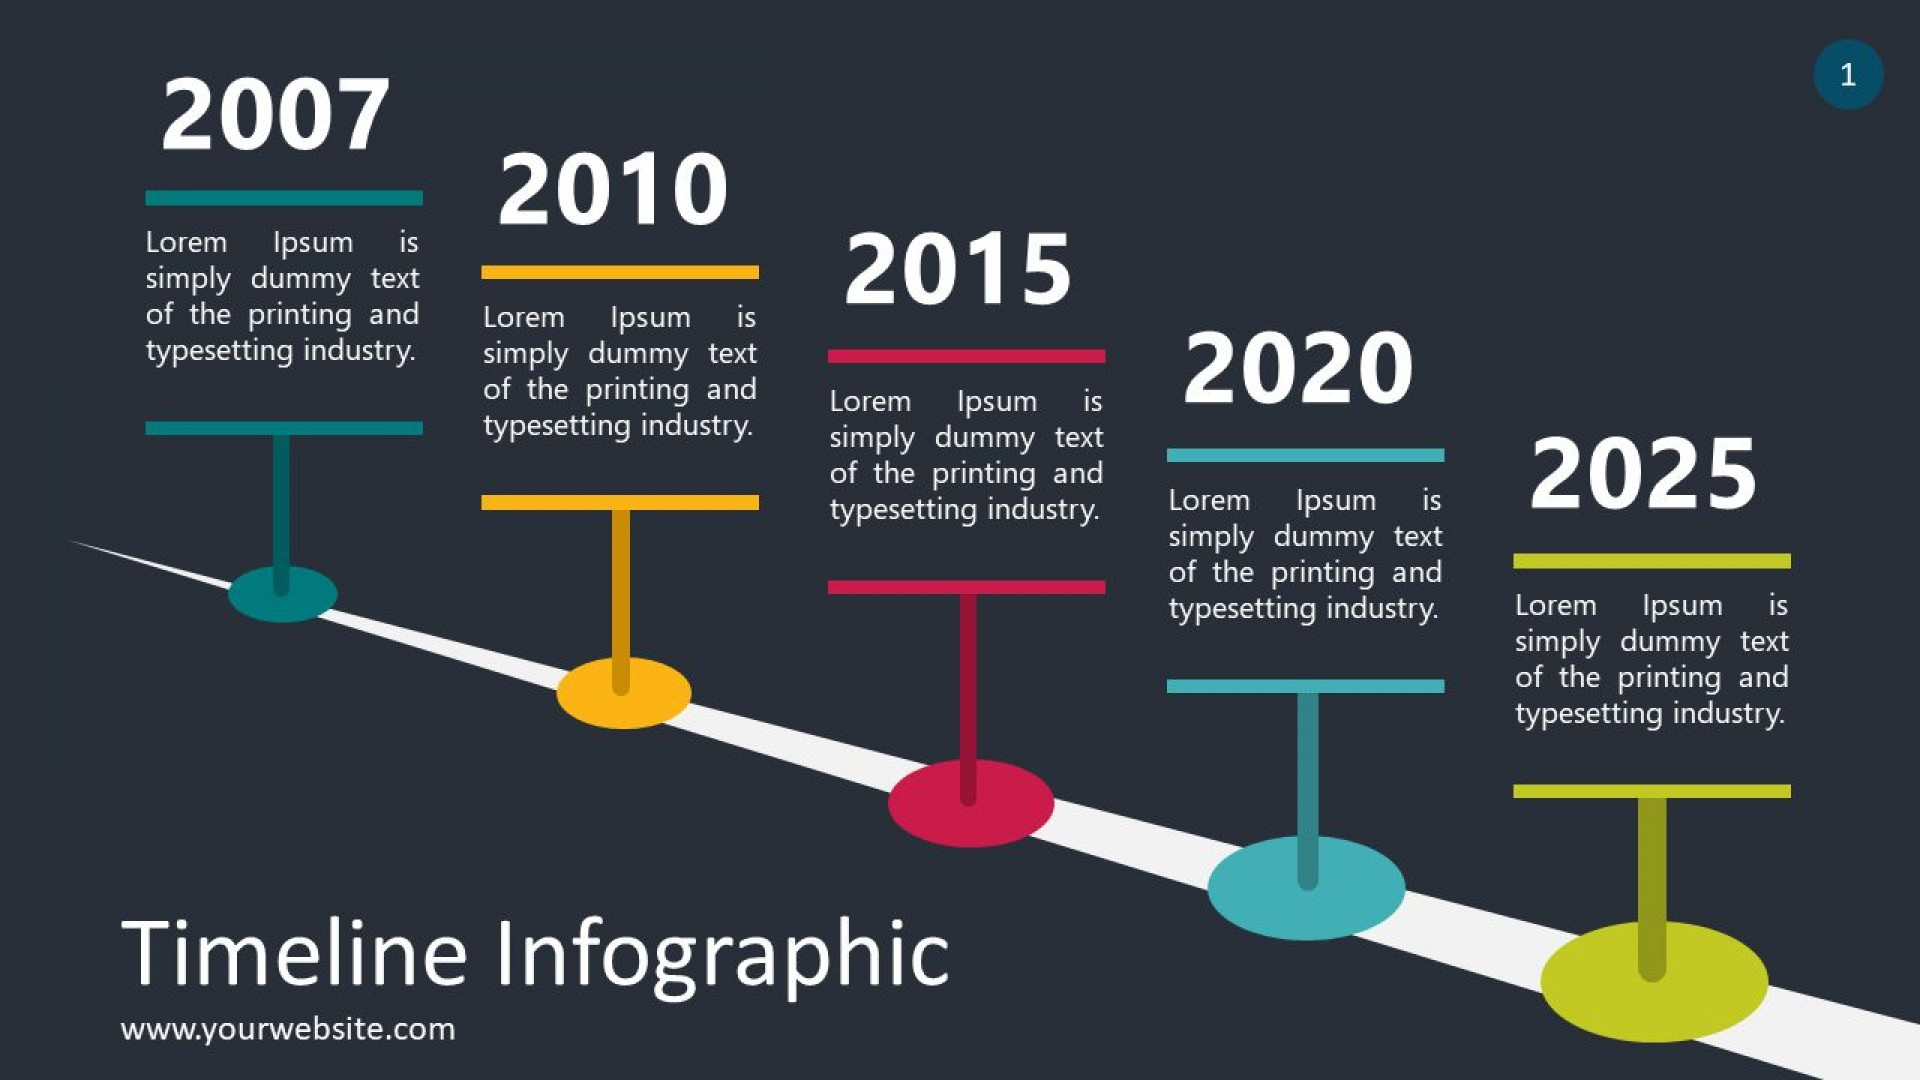 005 Top Timeline Infographic Template Powerpoint Download Highest Quality  Free1920